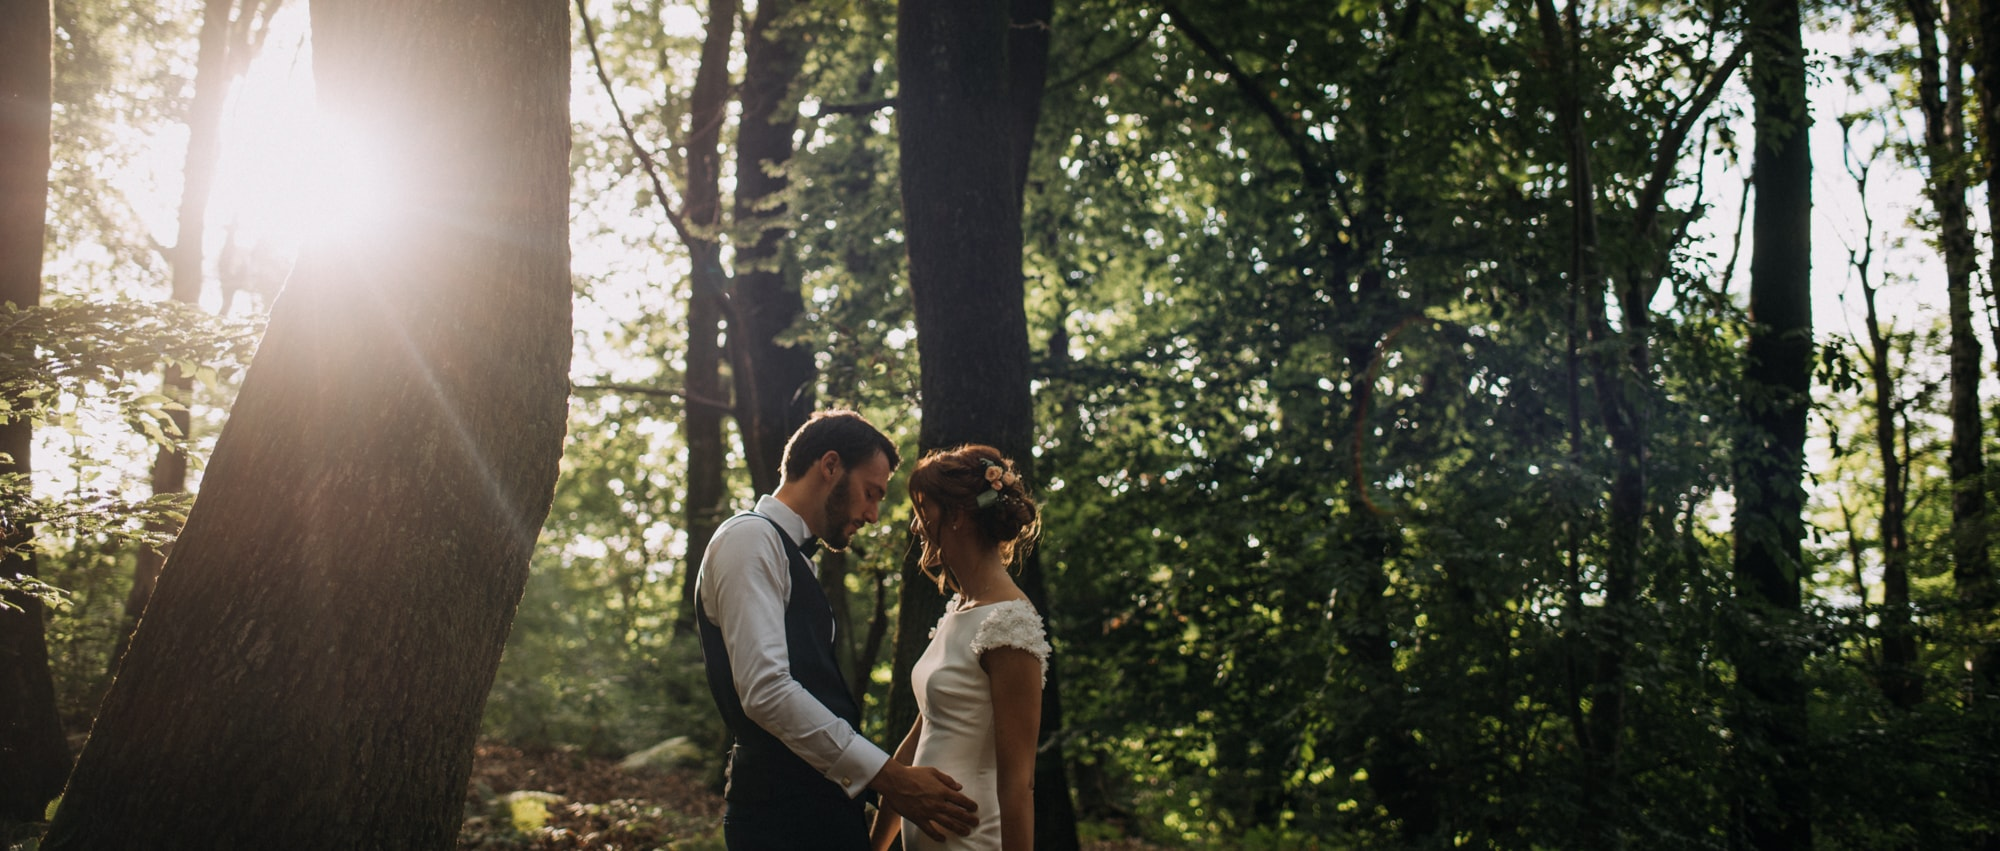 Borgo Lovers / Boho Wedding in Asolo, Treviso